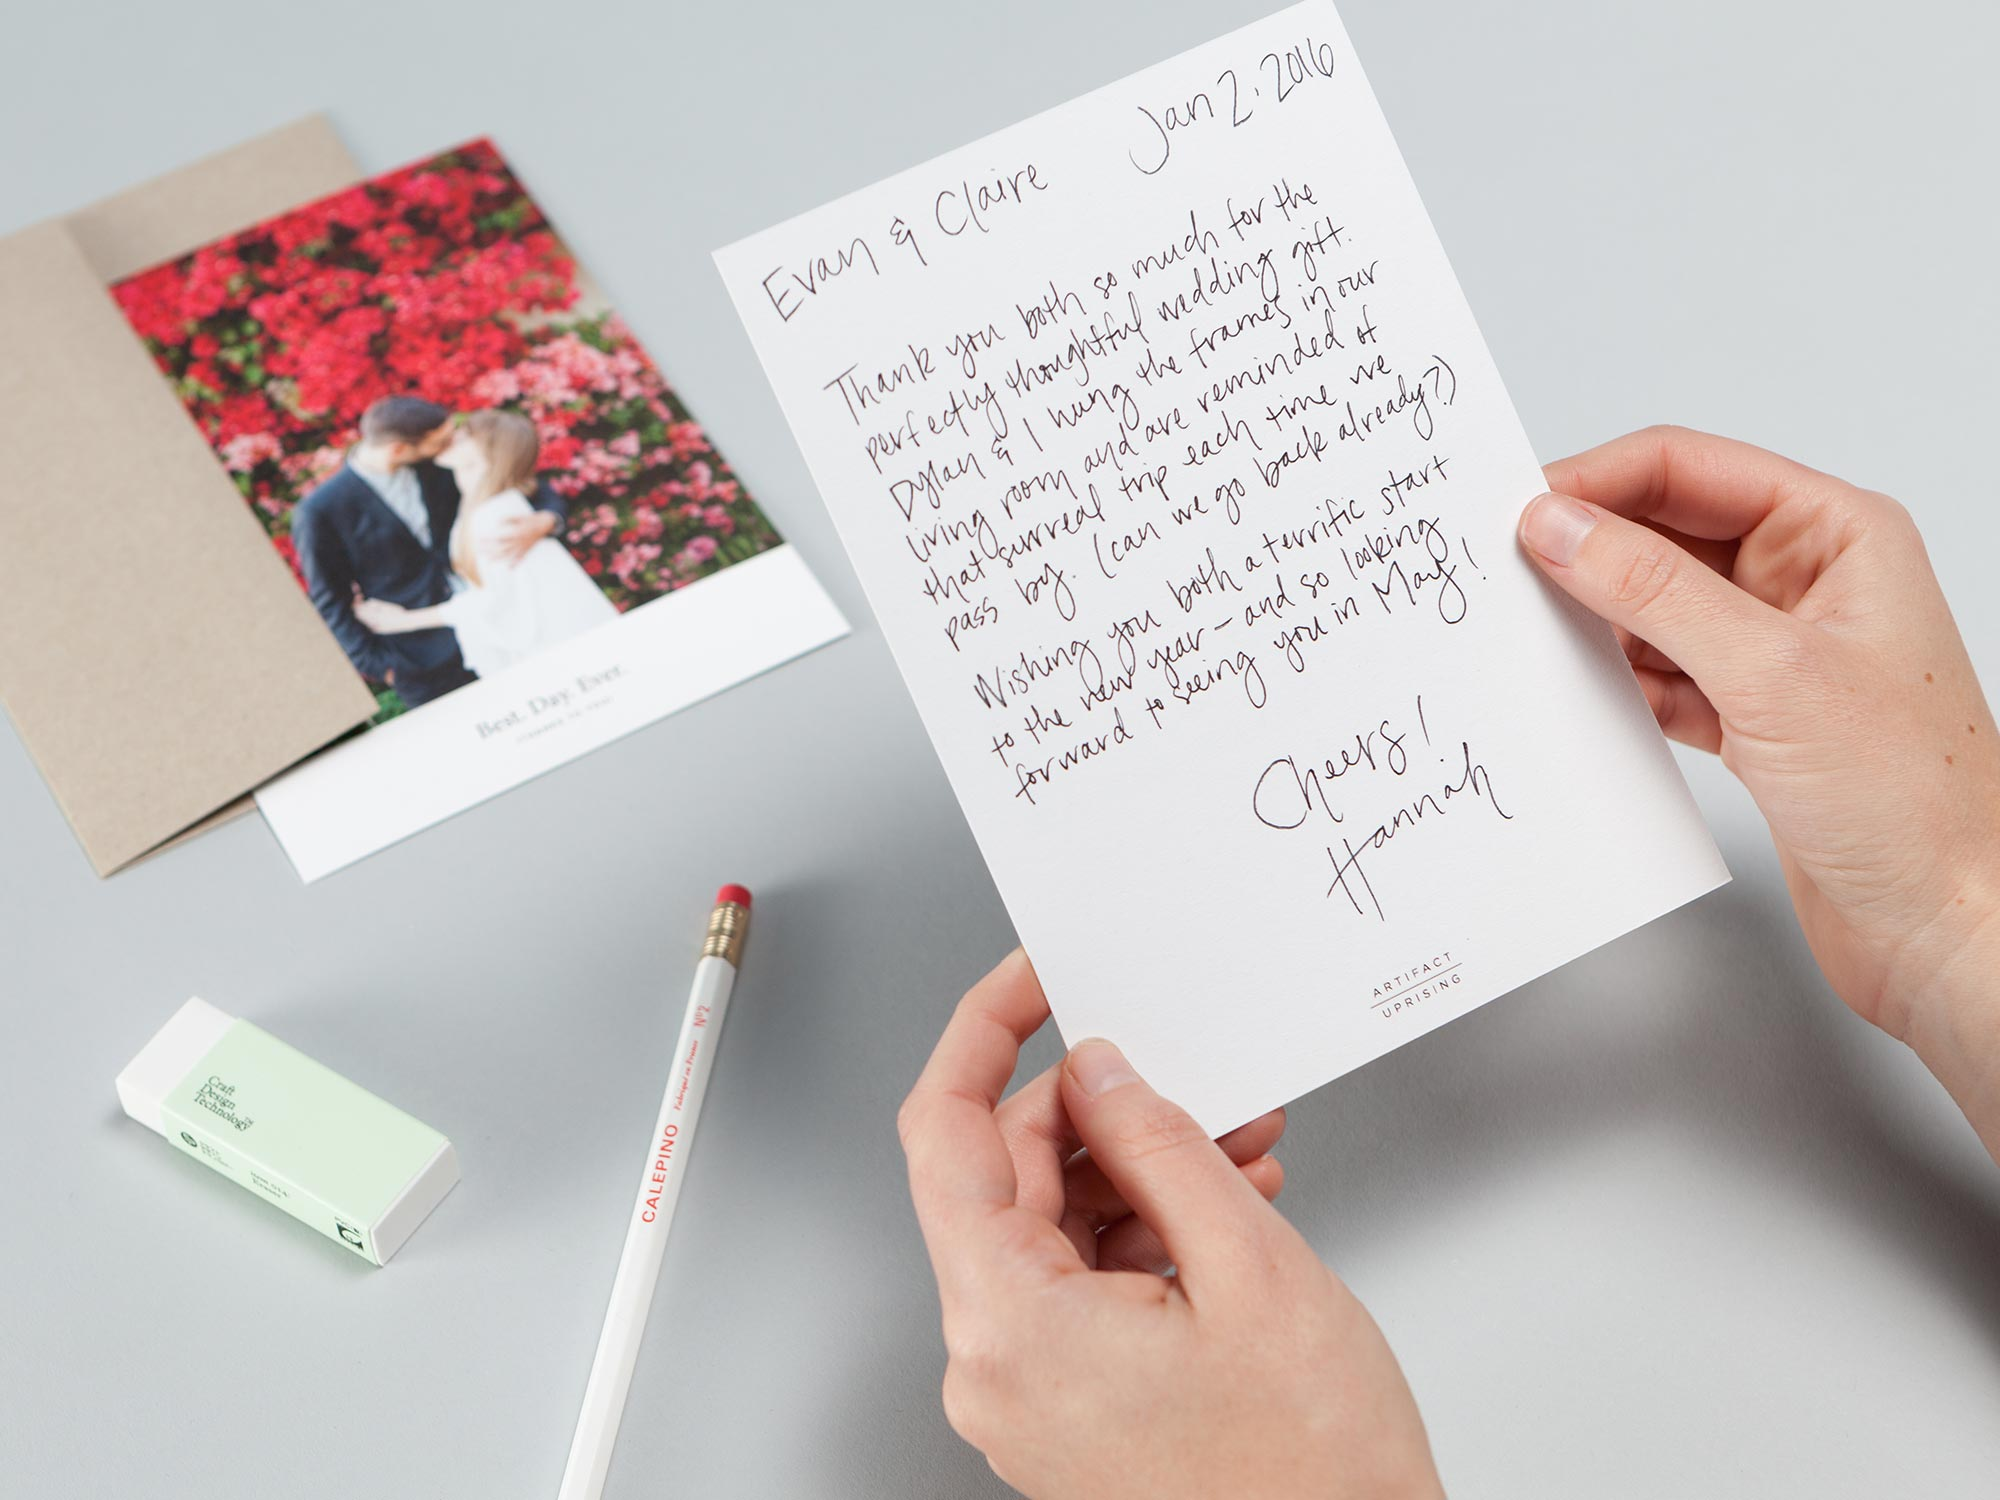 A photo card with hand written note on the back